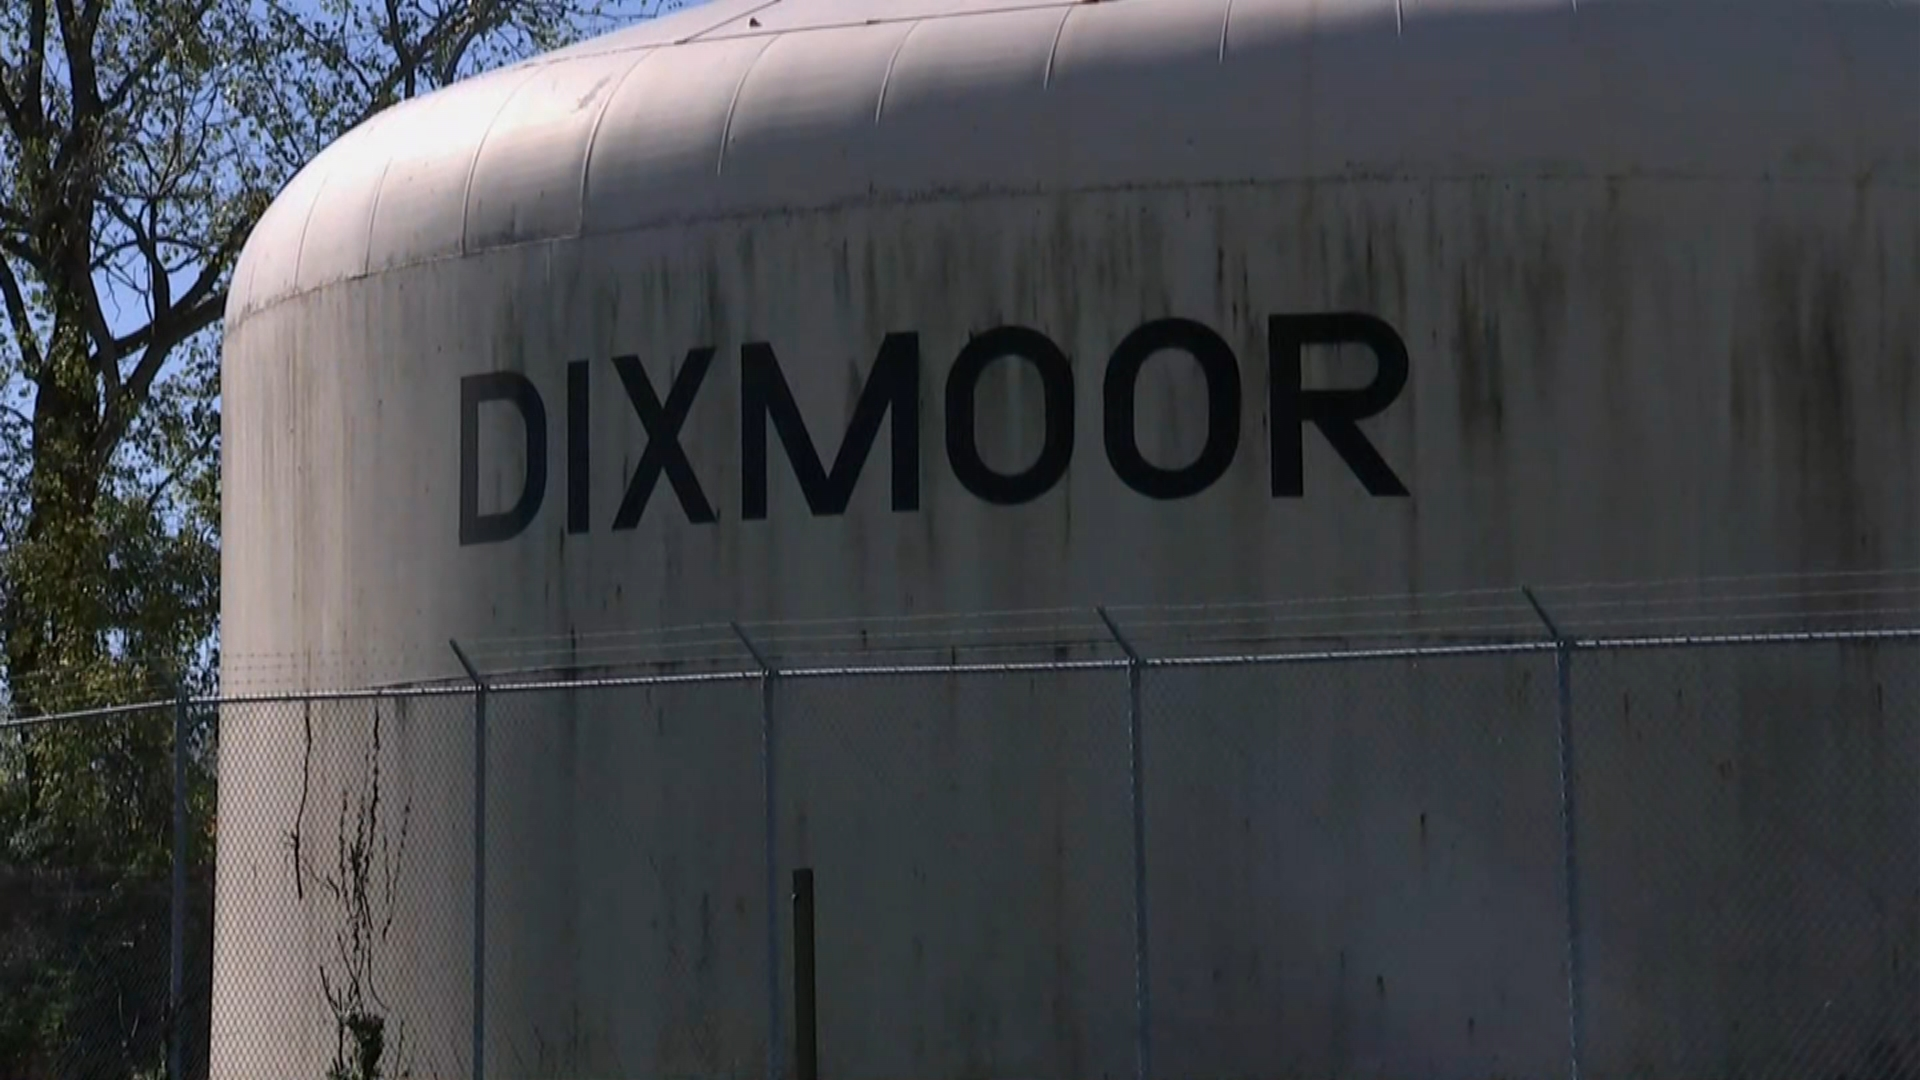 Dixmoor Residents Can Resume Showers, Though Boil Order Remains in Place – NBC Chicago